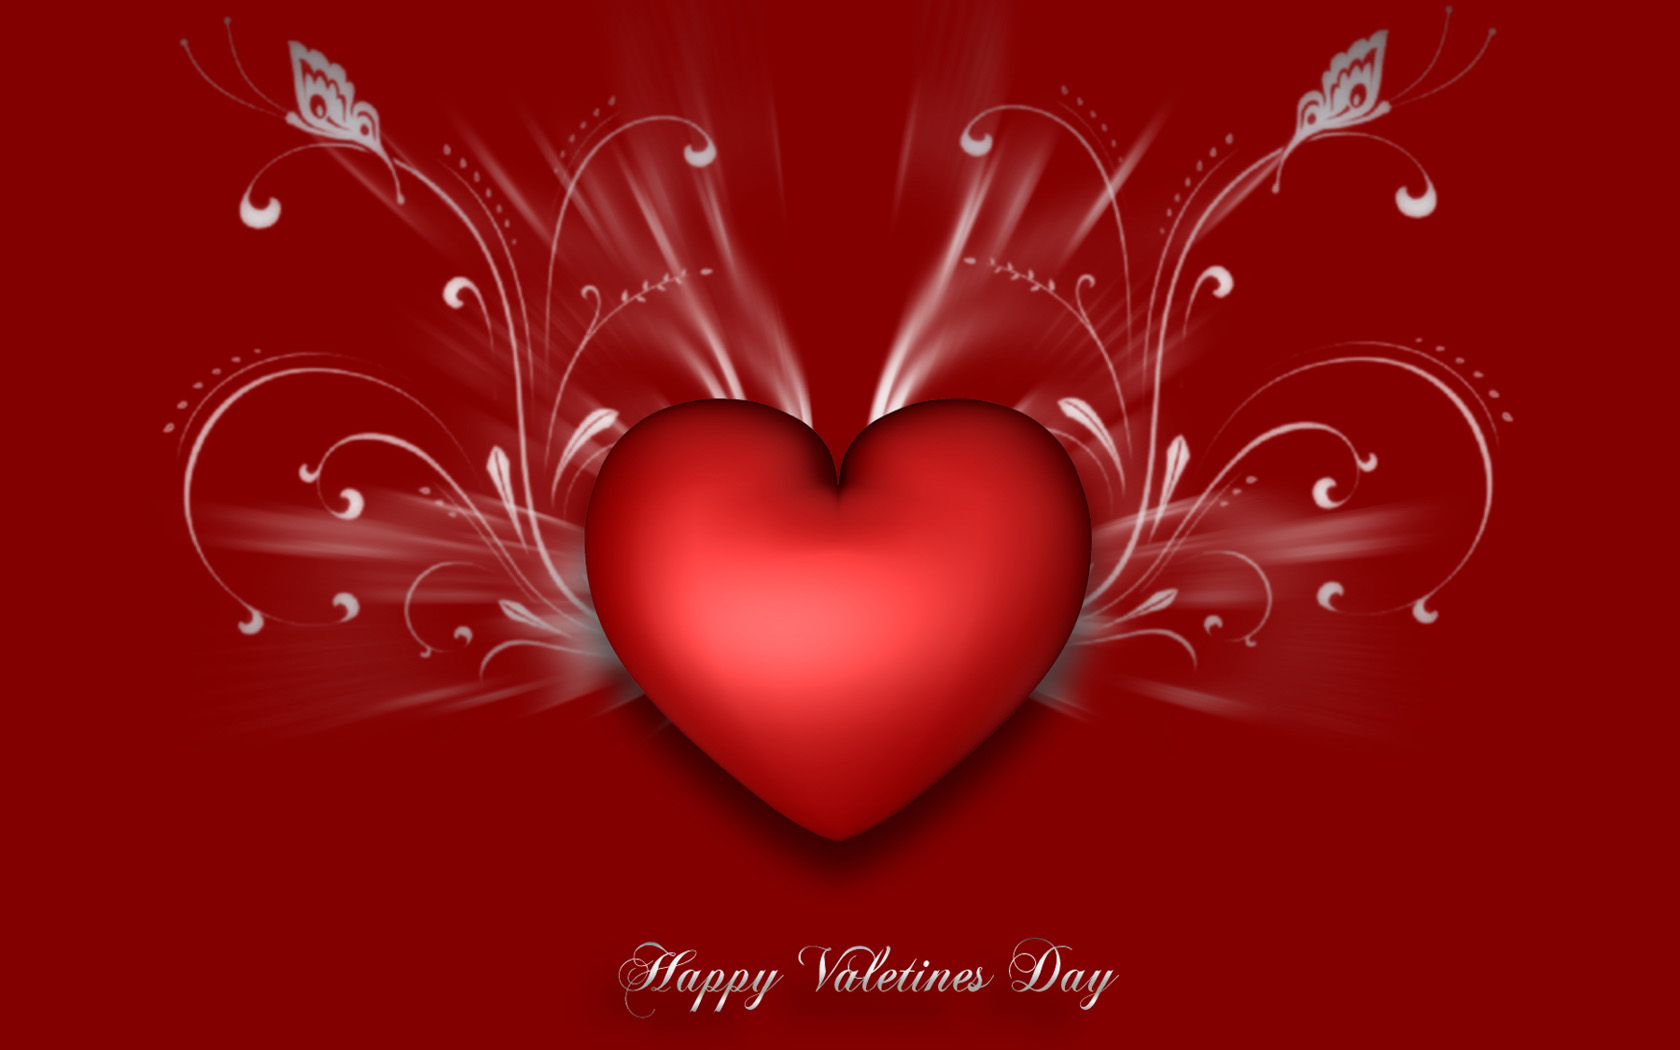 Cute Valentines Day Wallpaper 10815 Hd Wallpapers in Cute   Imagesci 1680x1050